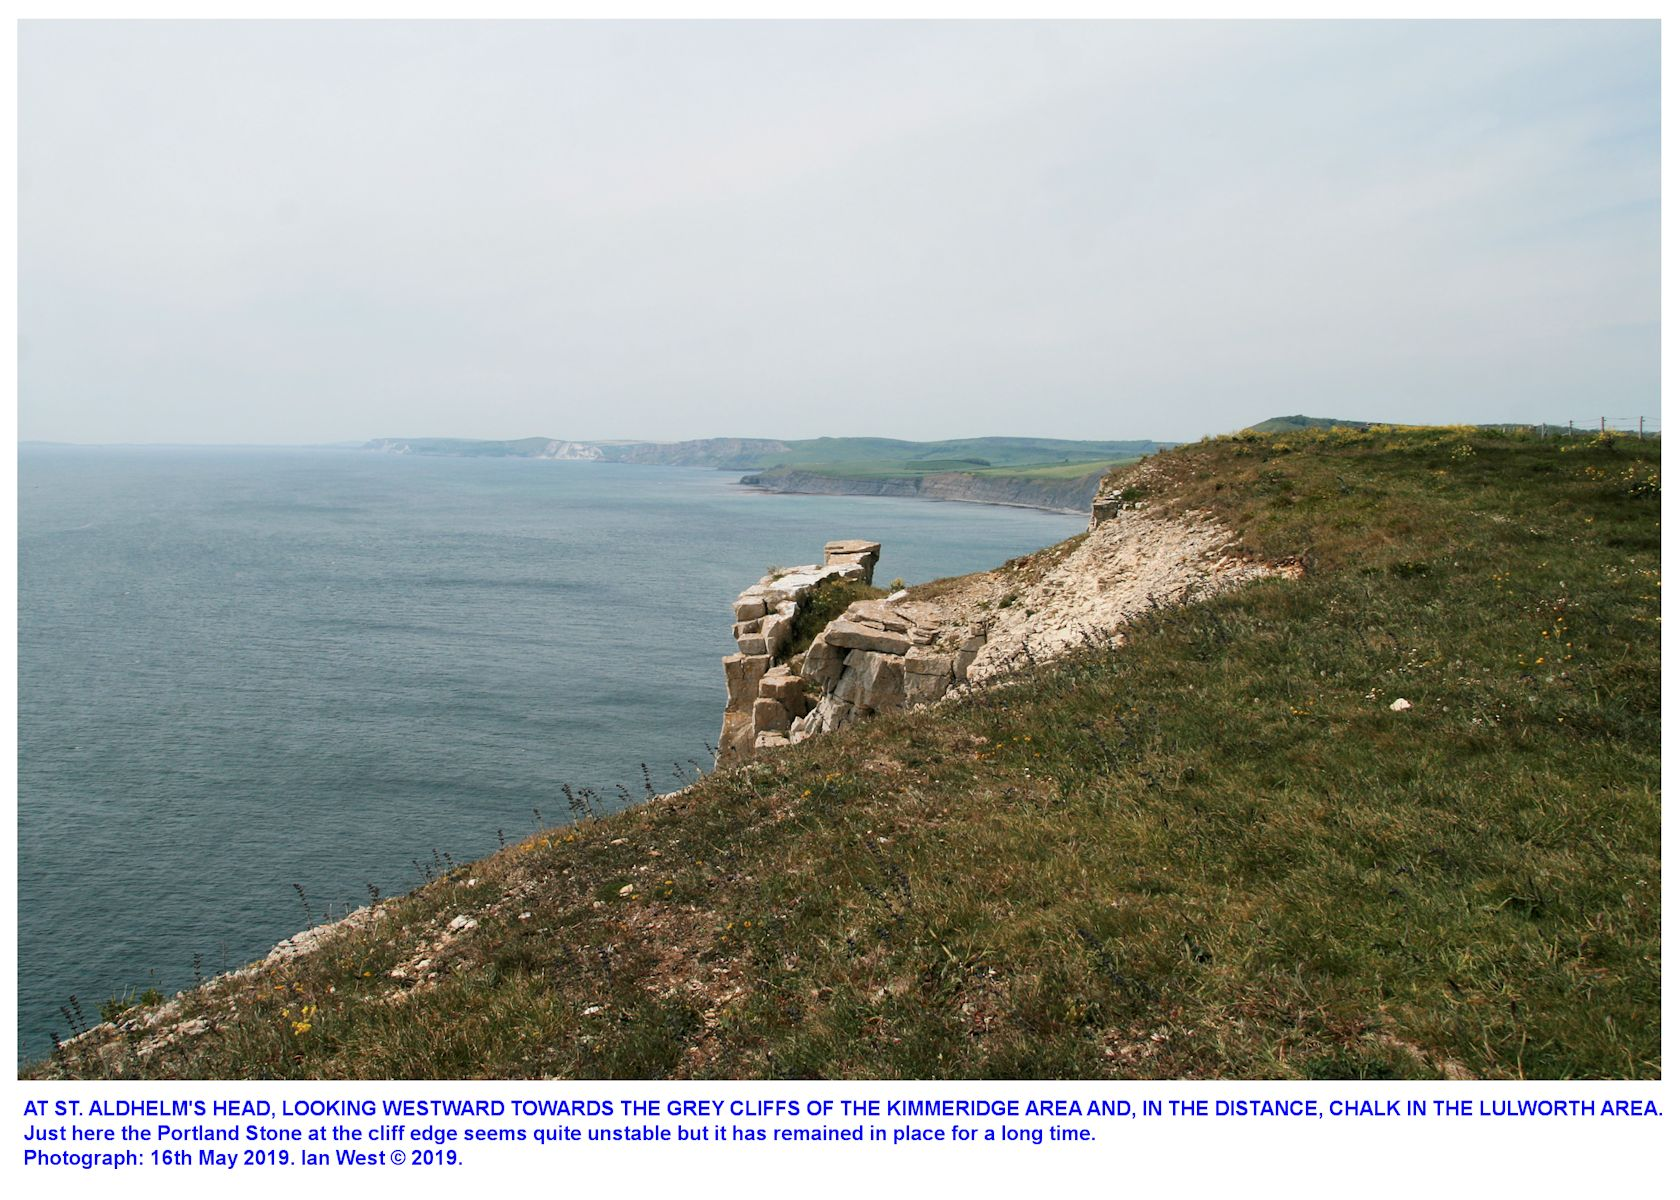 A view westward from St. Aldhelm's Head, Dorset, towards the Kimmeridge cliffs, 16th May 2019